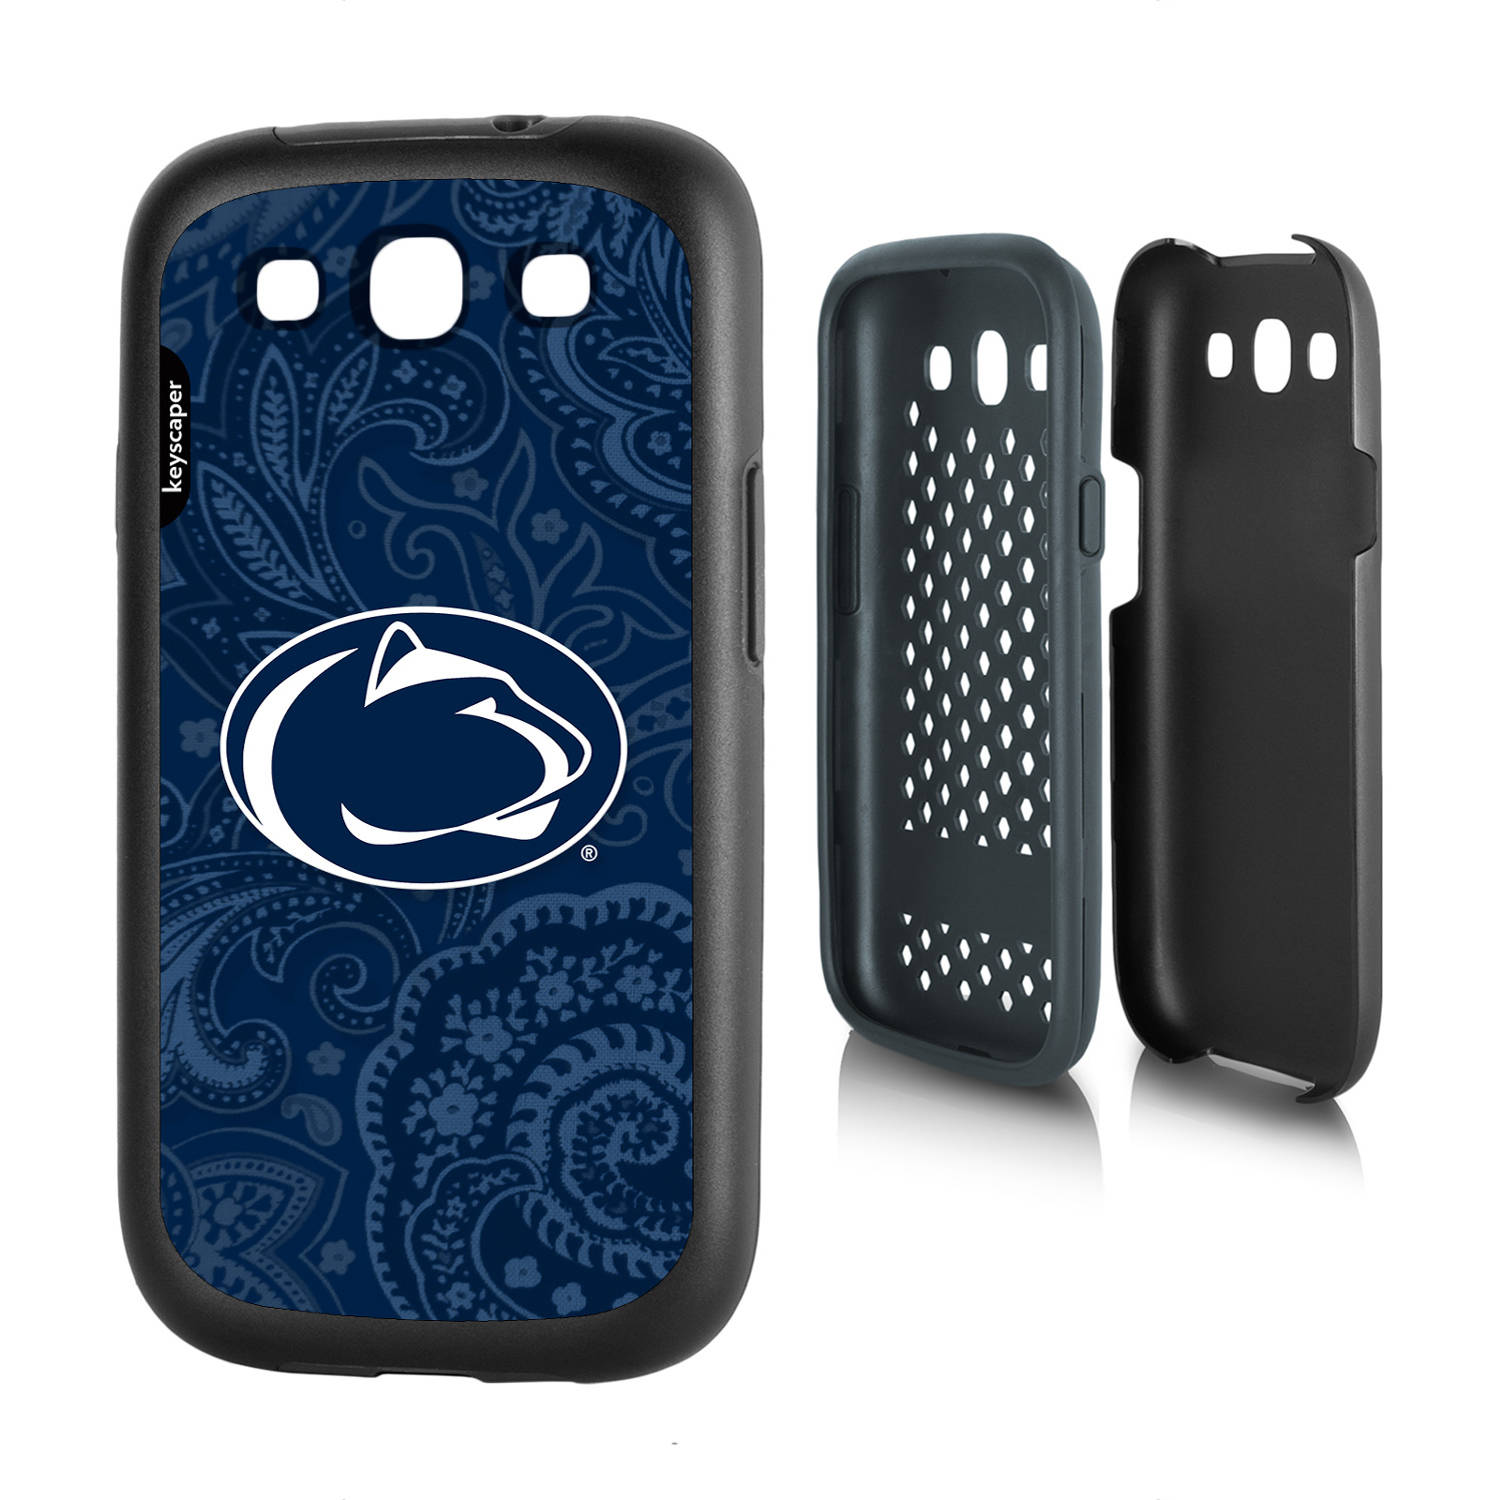 Penn State Nittany Lions Galaxy S3 Rugged Case